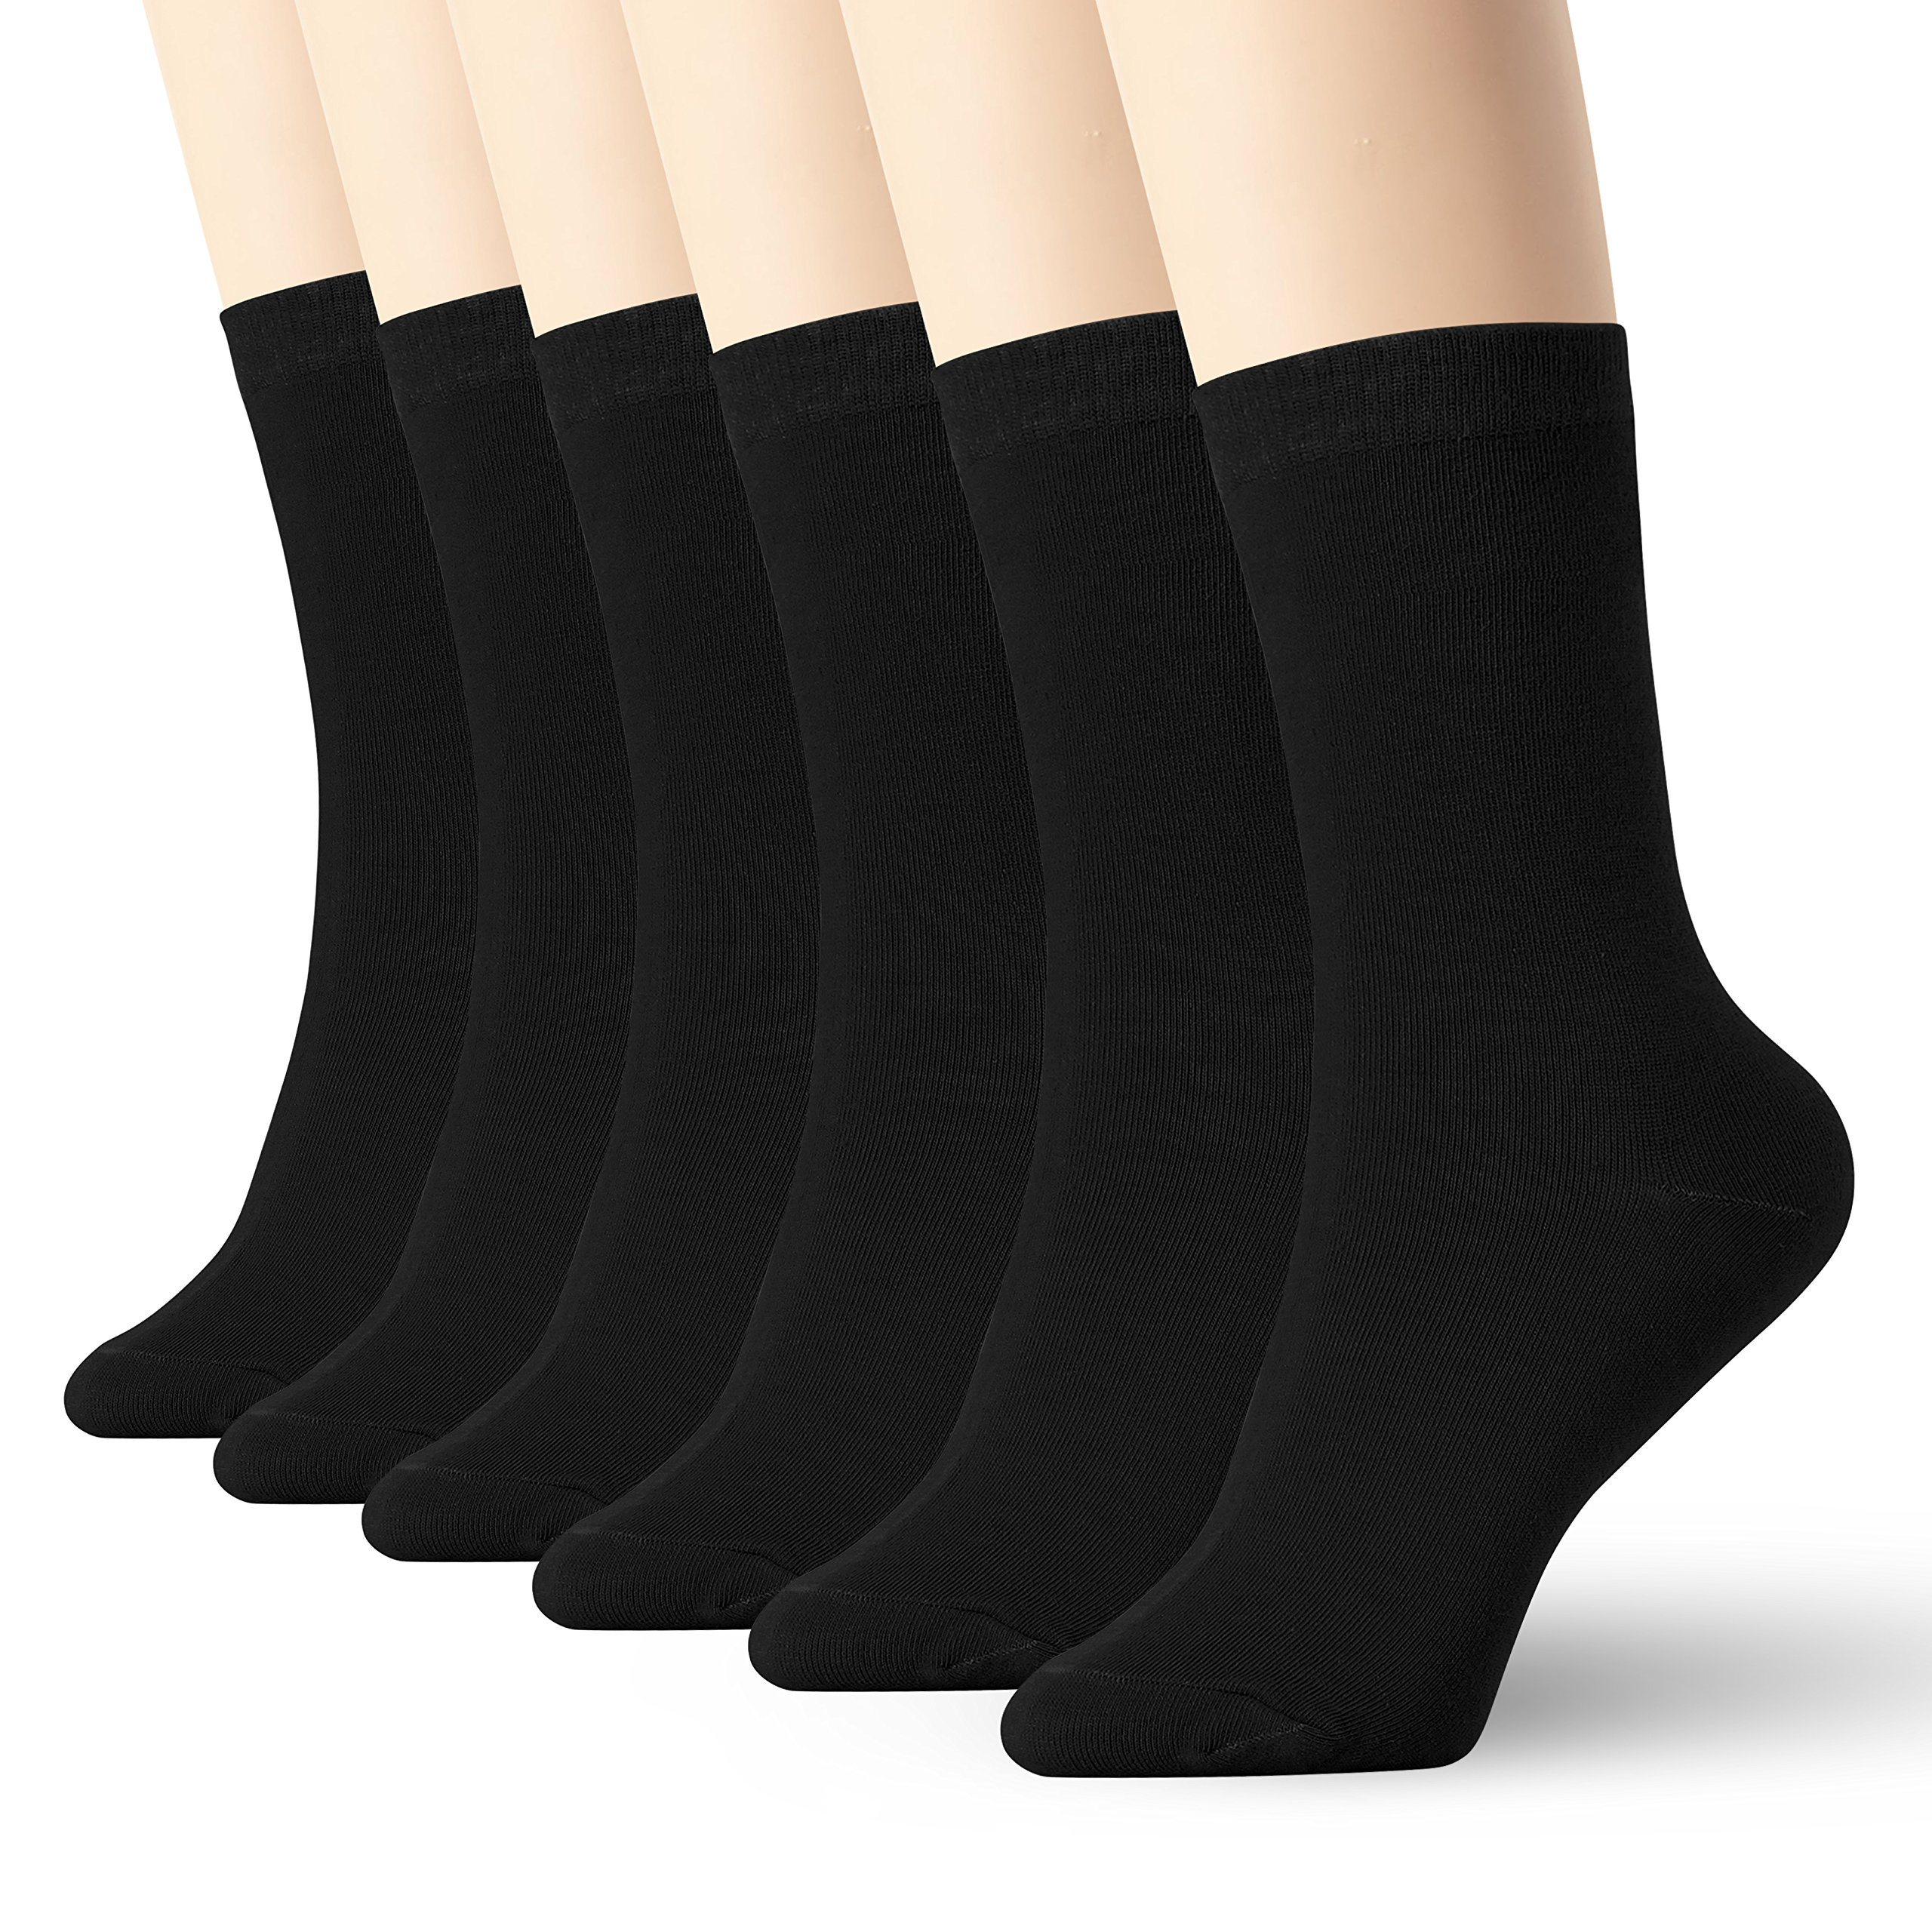 Womens Thin Cotton Socks High Ankle 6 Pack (Black XL Size)